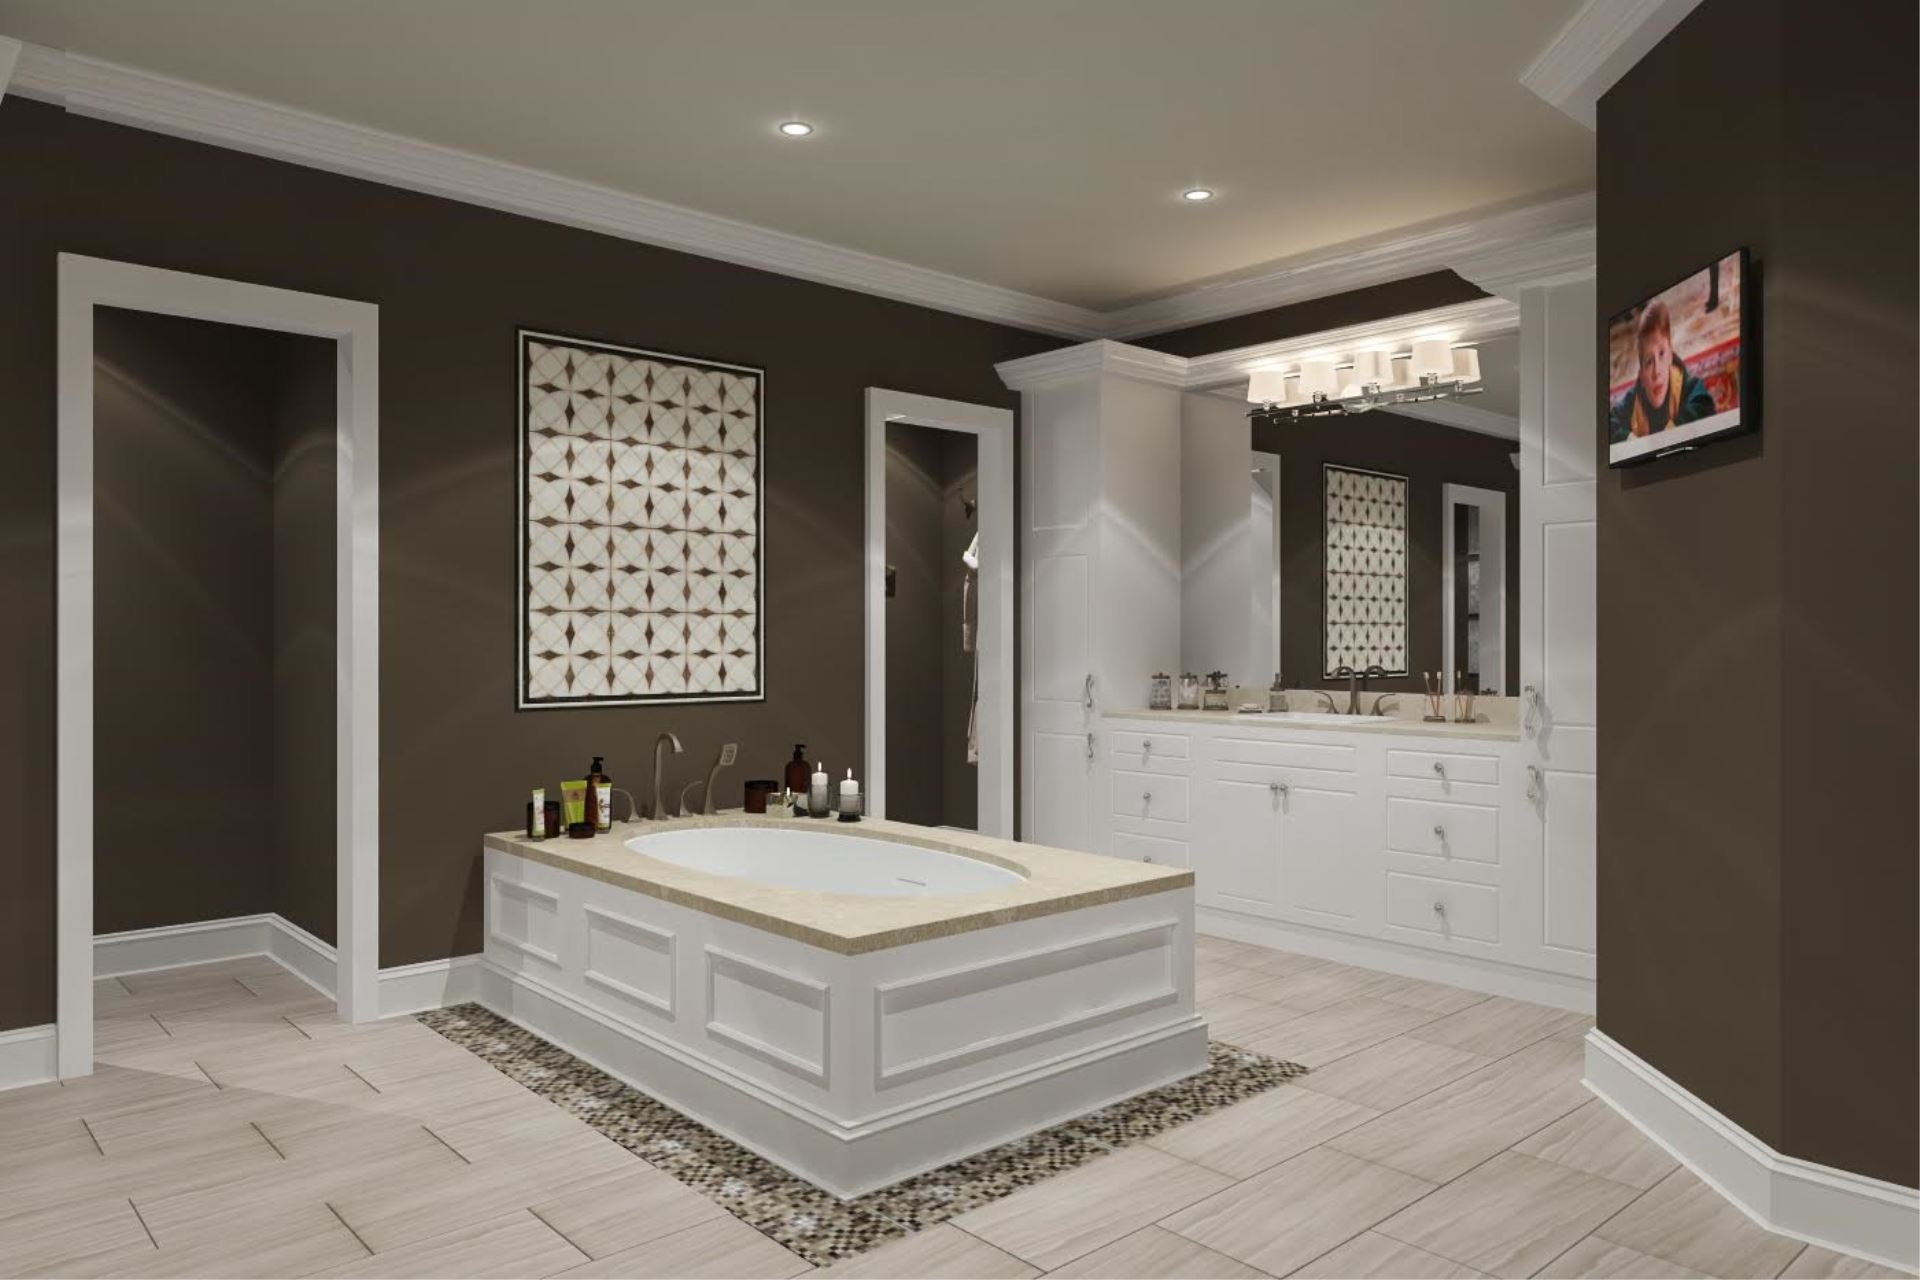 Bathroom Remodeling Tips And Ideas ContentRally - How to renovate a bathroom step by step